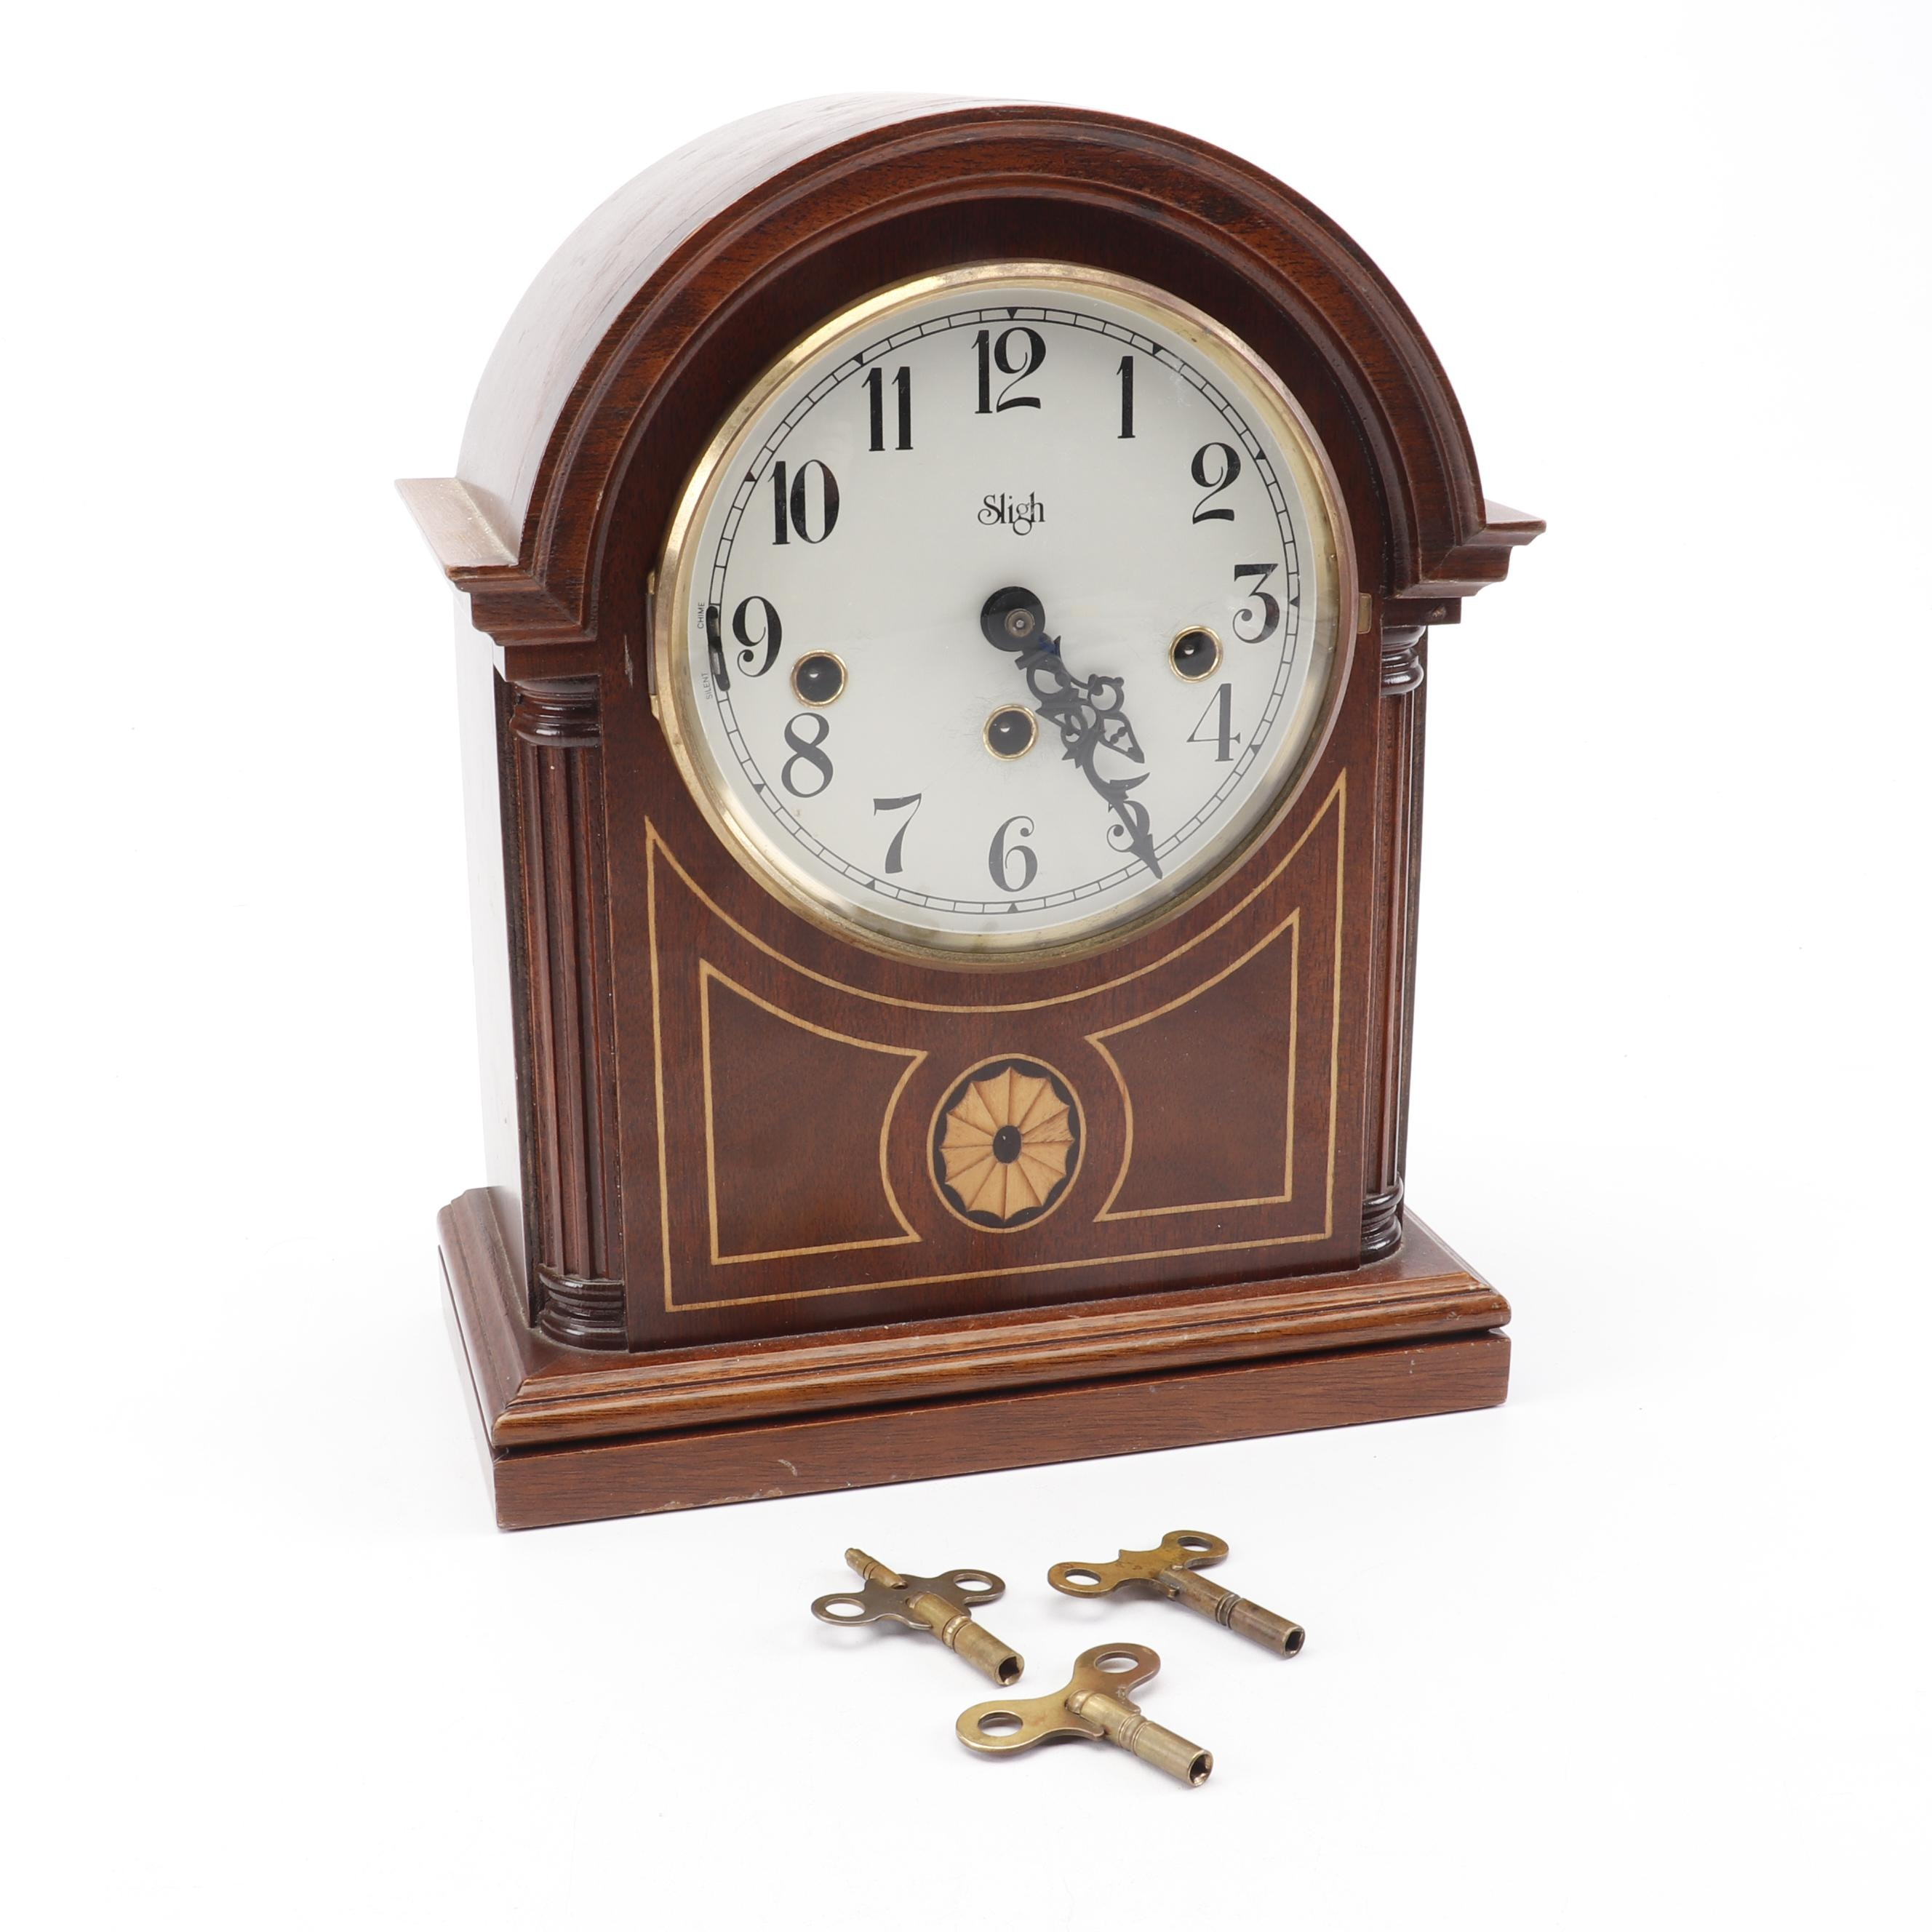 Sligh Westminster Chime Barrister Clock with Brass Hermle Movement